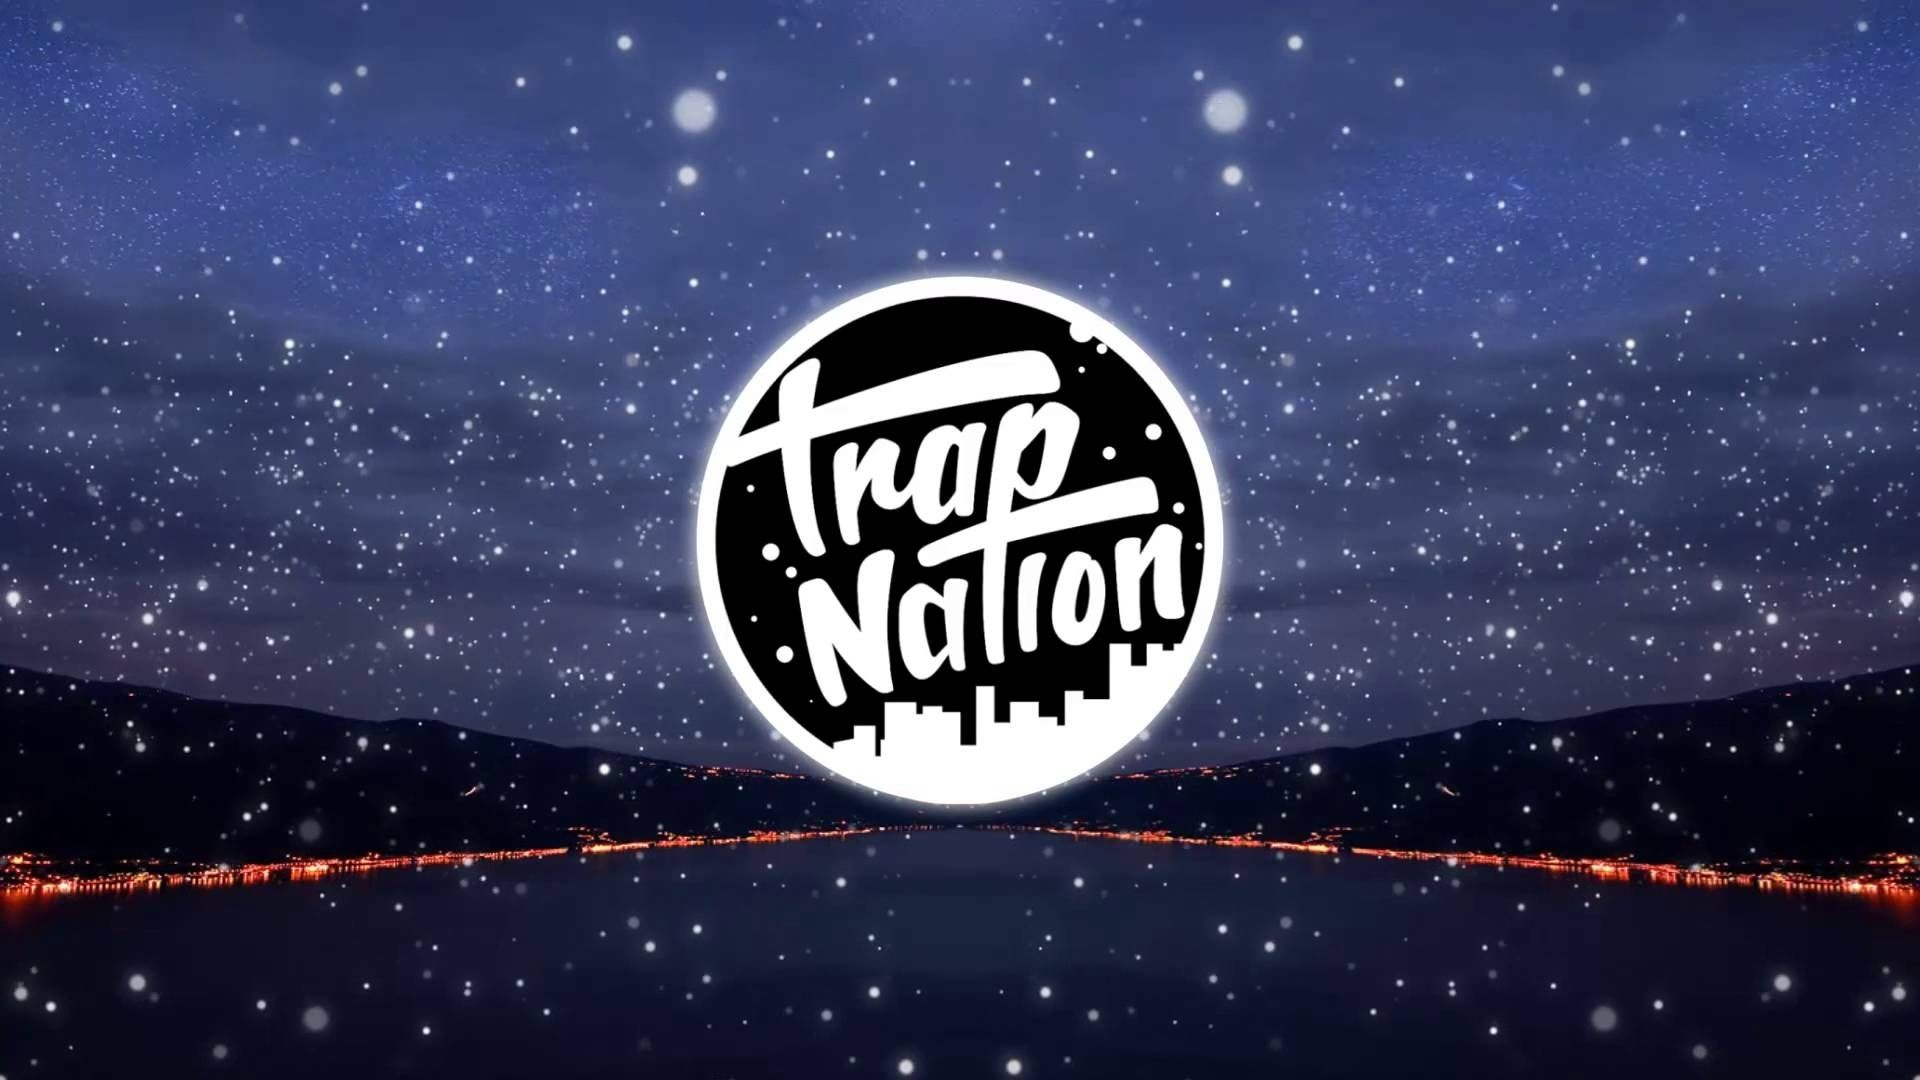 10 Top Trap Nation Live Wallpaper Full Hd 1080p For Pc Desktop Live Wallpapers We Dont Talk Anymore Ios Wallpapers